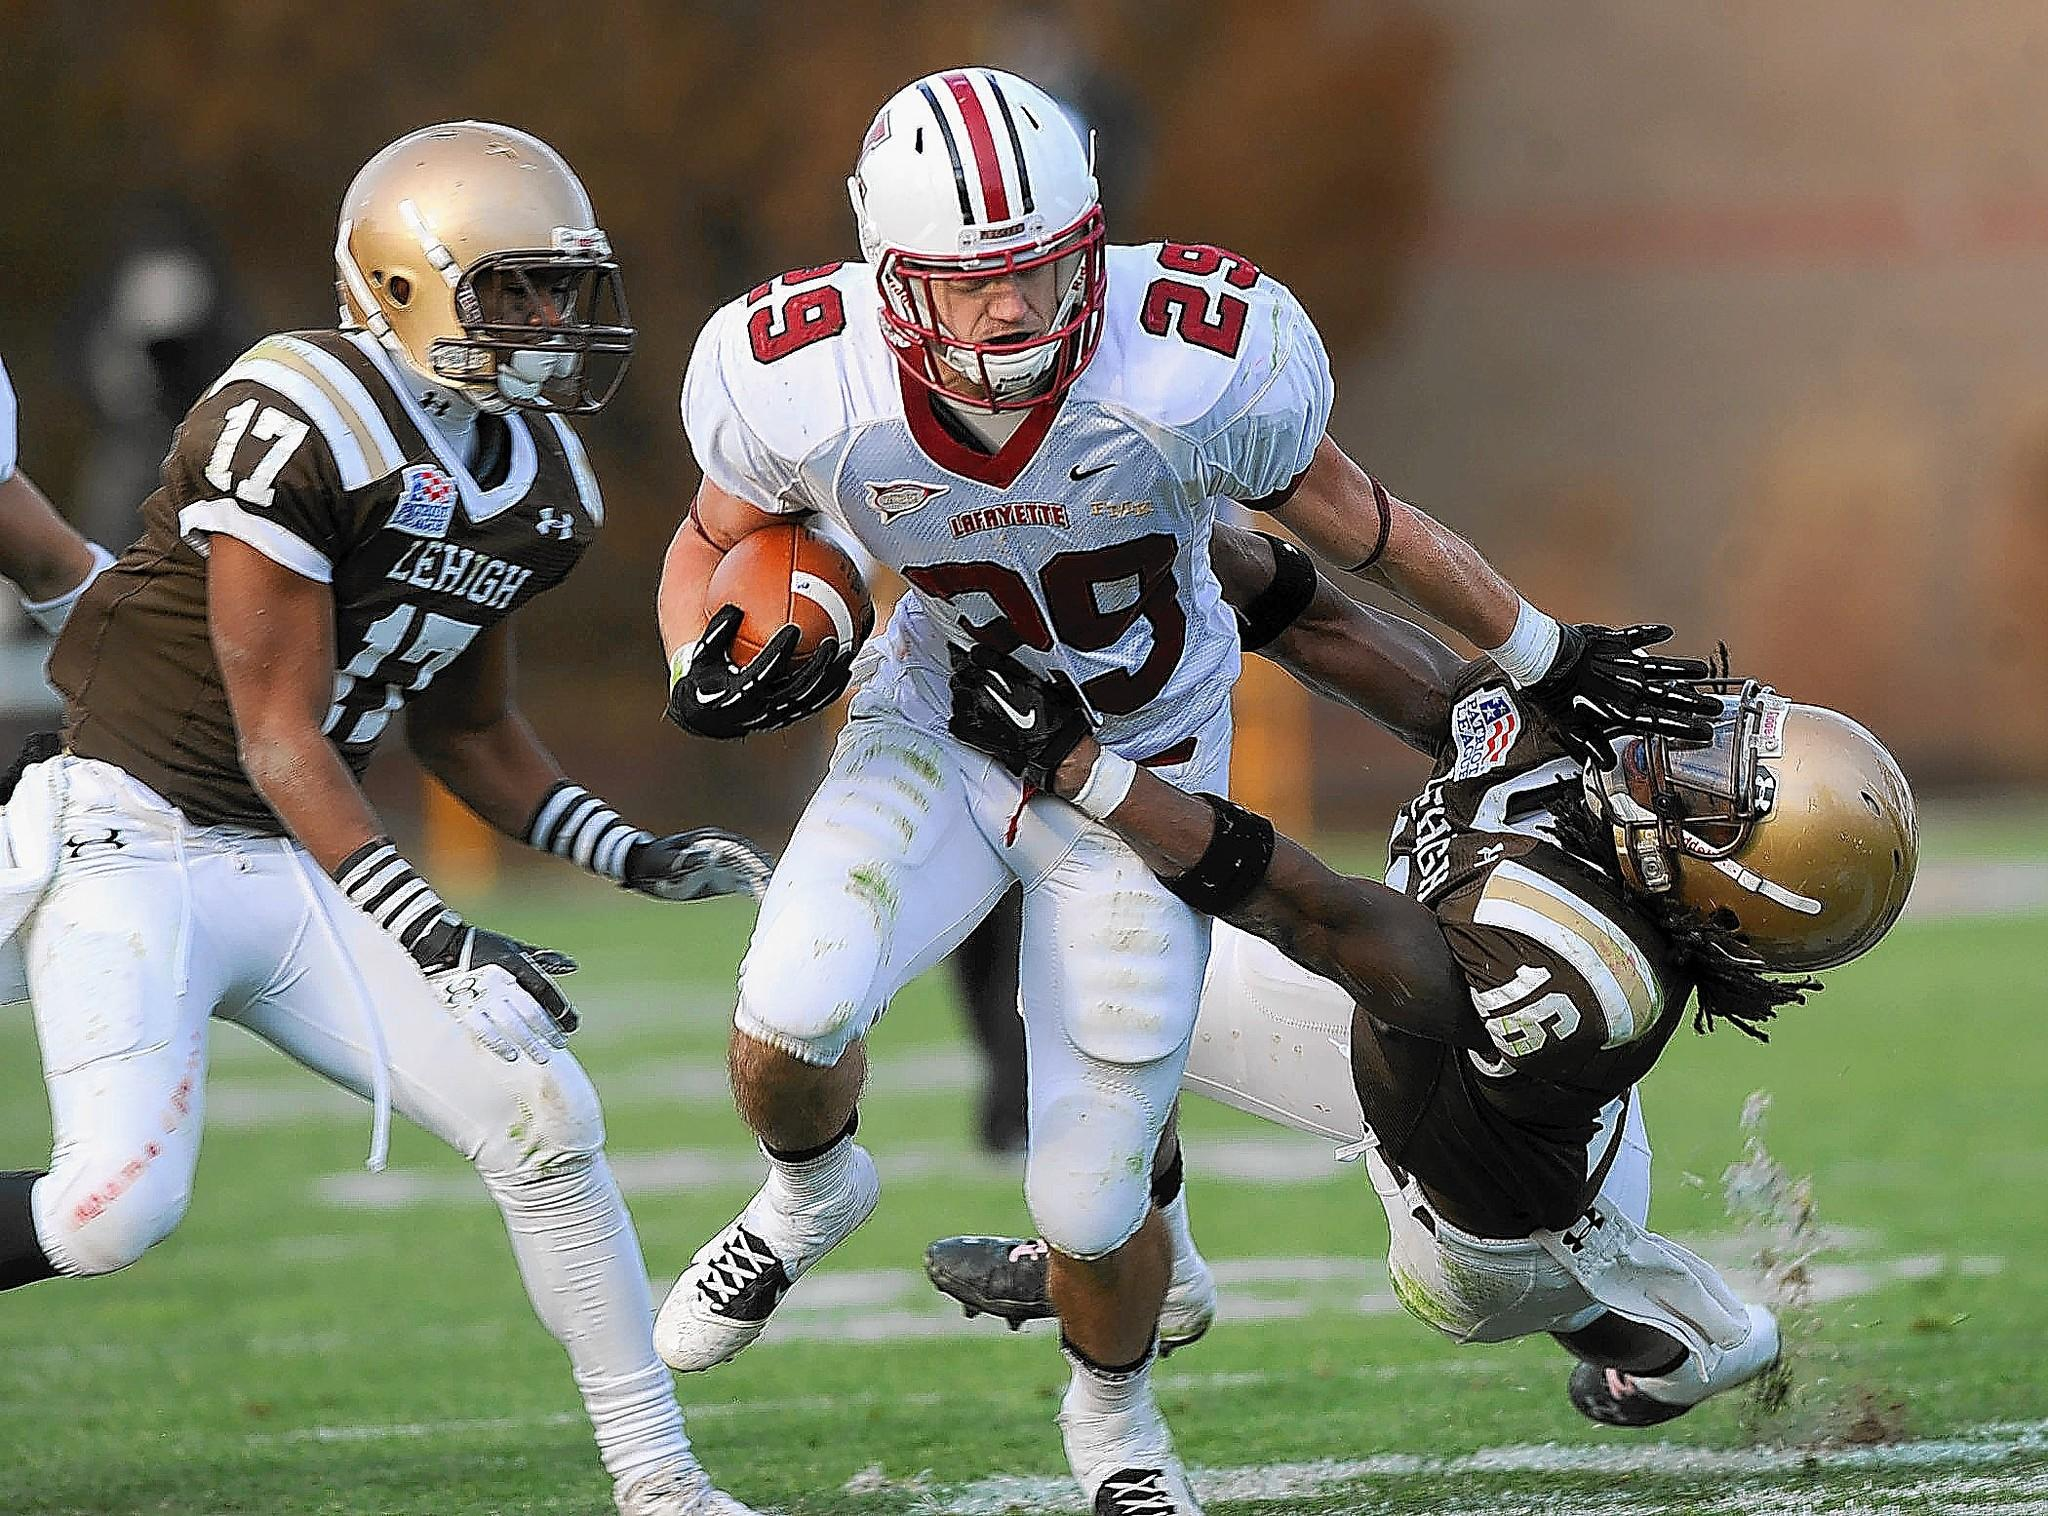 Running back Ross Scheuerman is one of Lafayette's senior leaders.